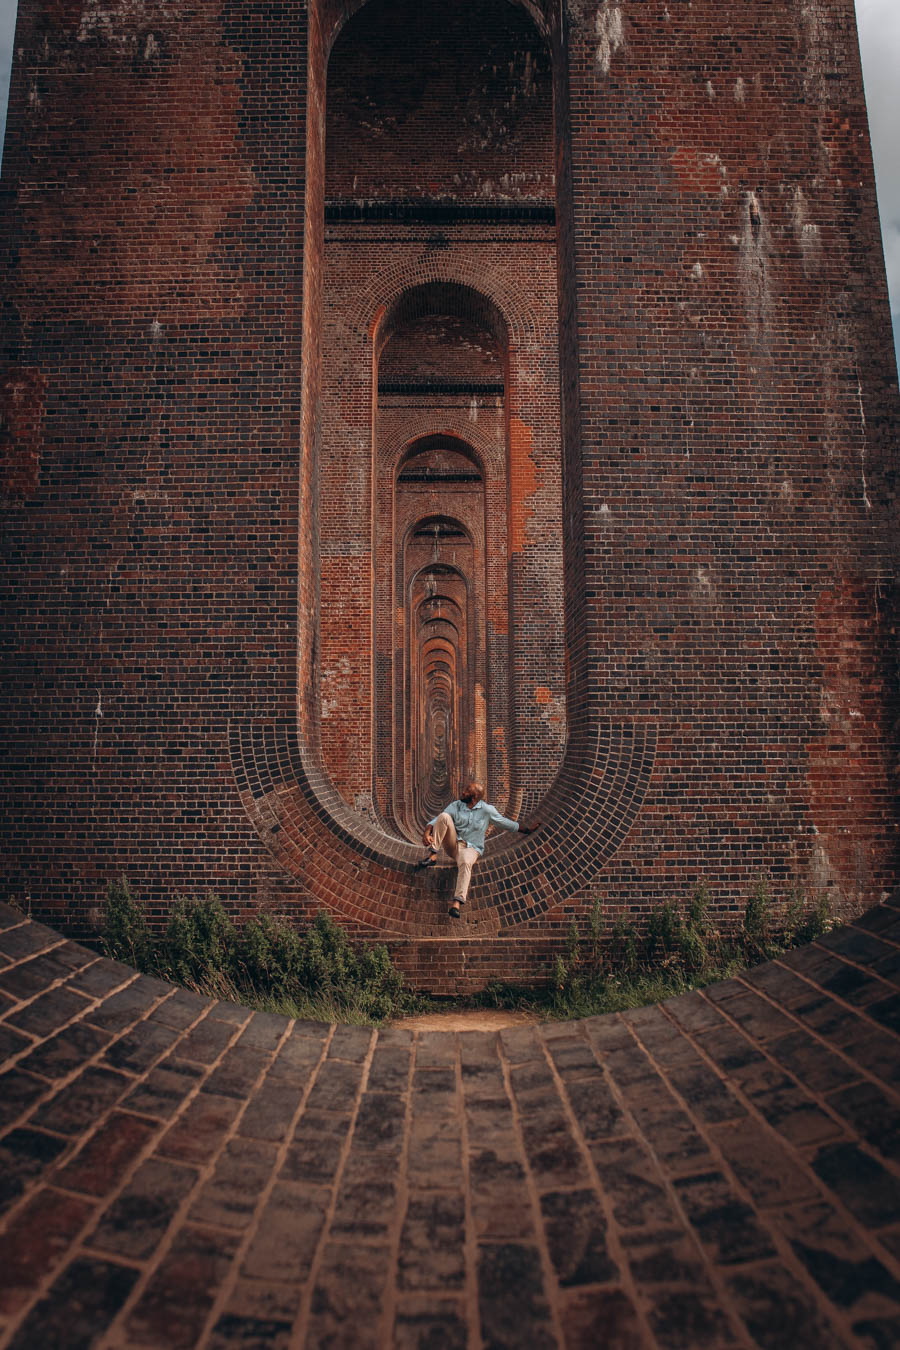 Omo sitting among the arches at the Balcombe Viaduct, West Sussex